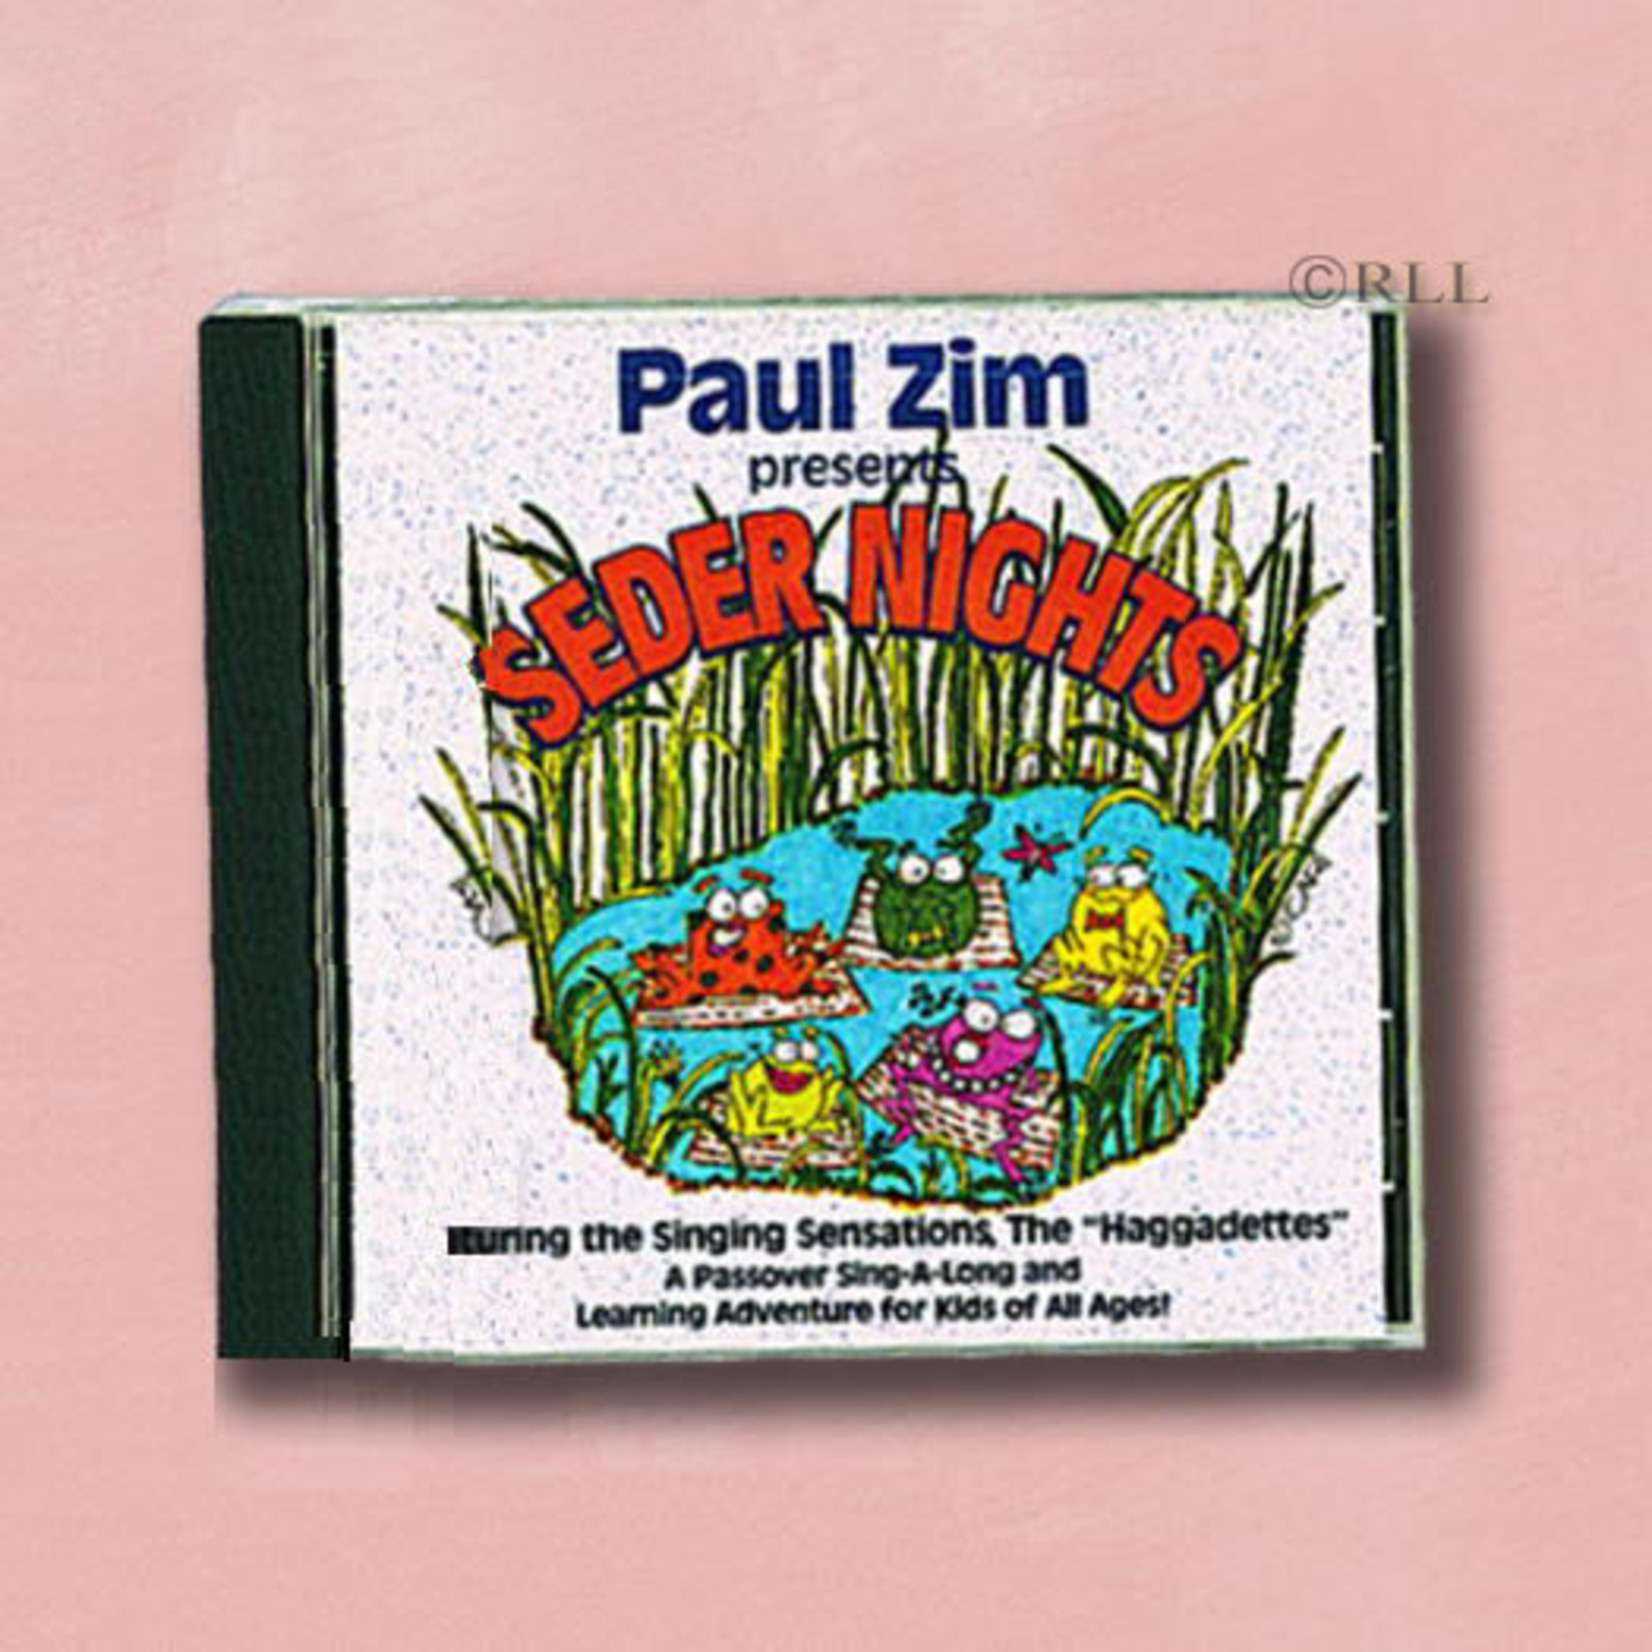 ''Seder Nights'' Passover CD, Paul Zim